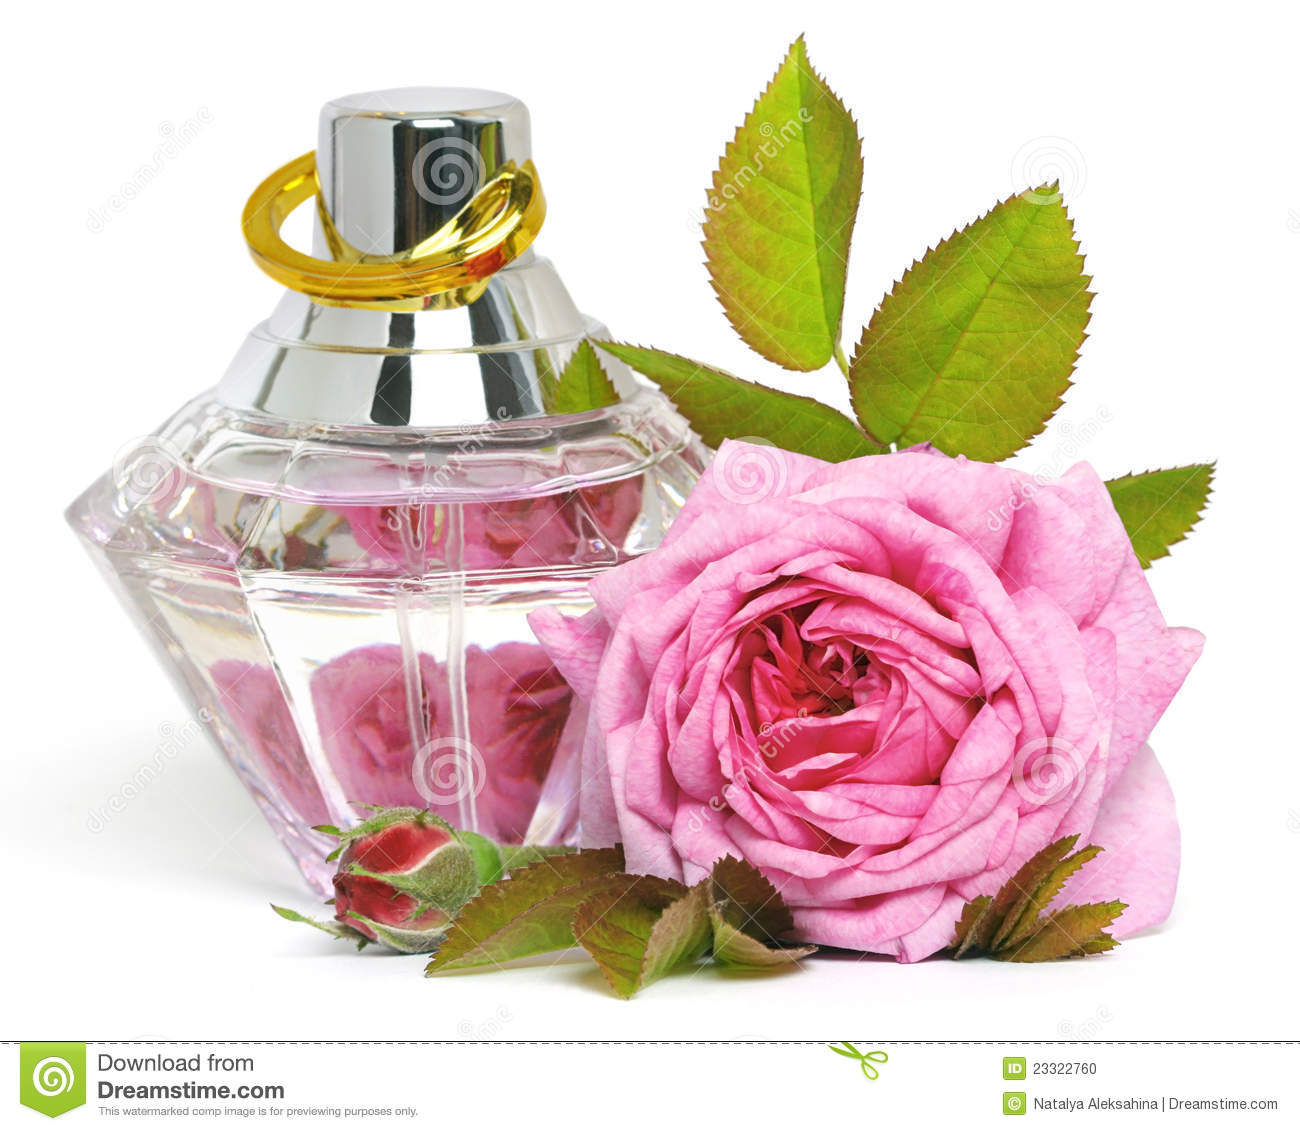 Women's perfume in beautiful bottle and rose on white background.